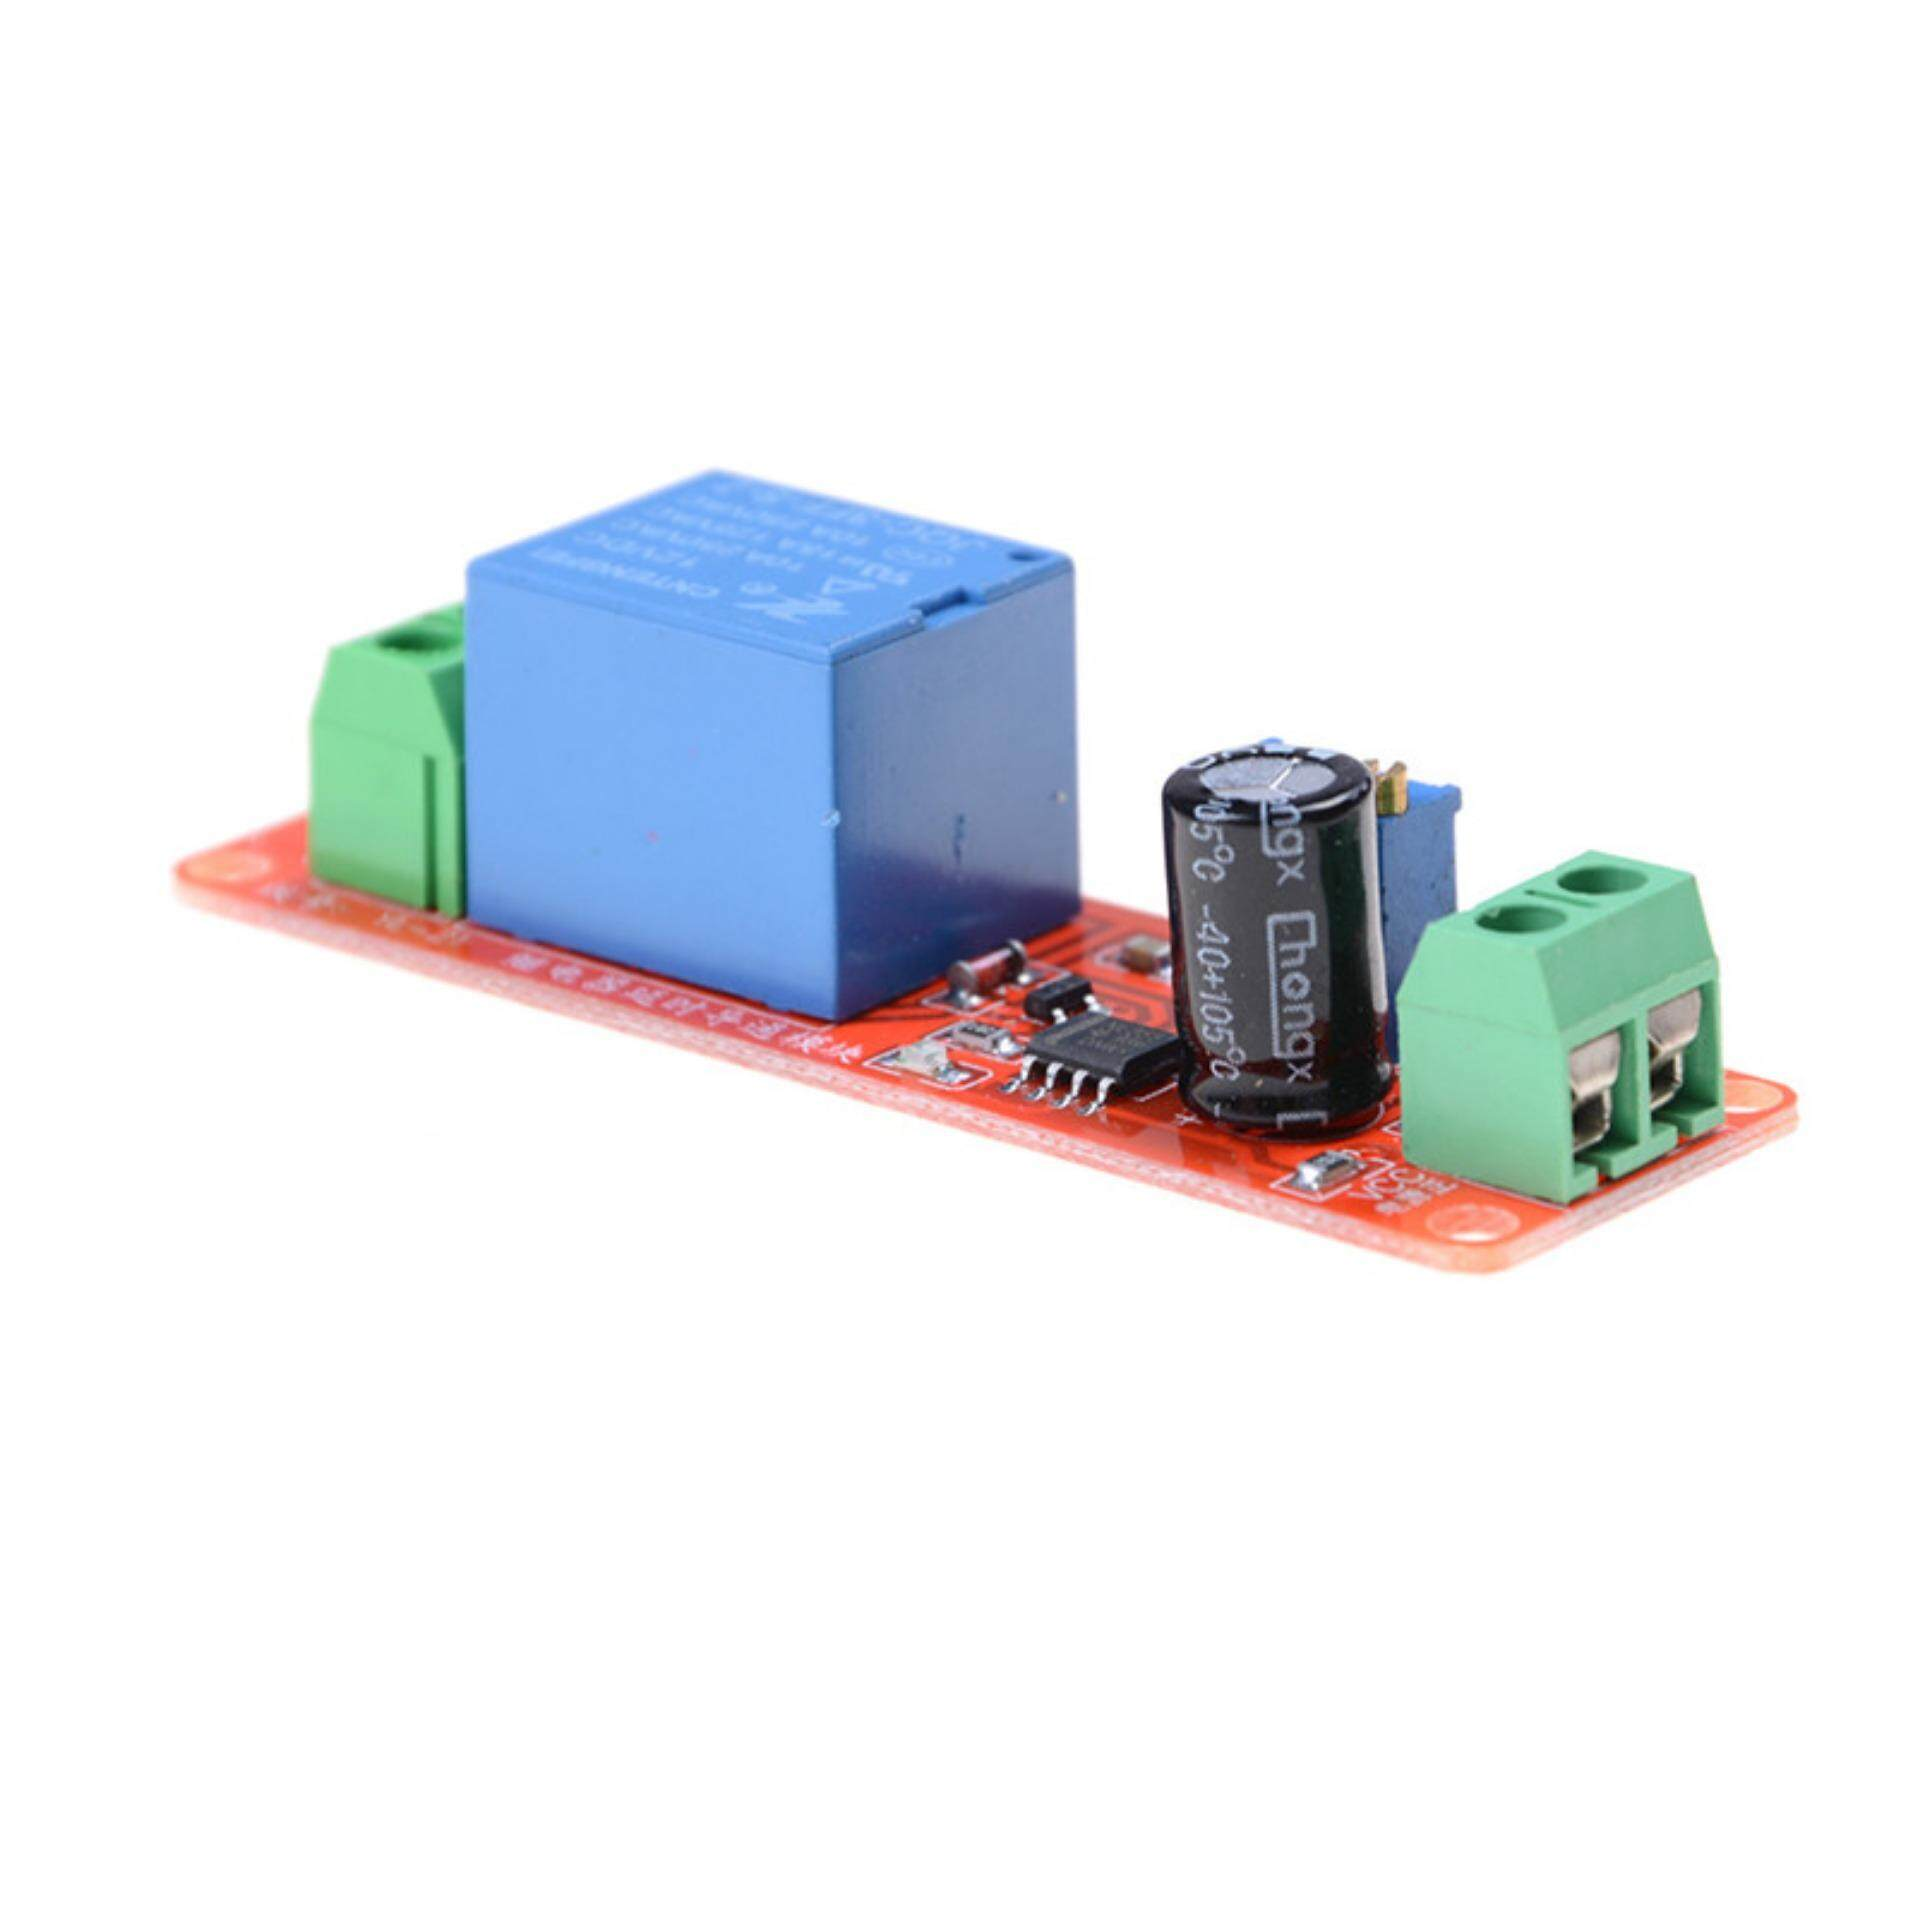 12v Display Automation Digital Delay Timer Control Switch Relay Philippines Ac 110 250v Source Ne555 Dc Shield Adjustable Module Intl